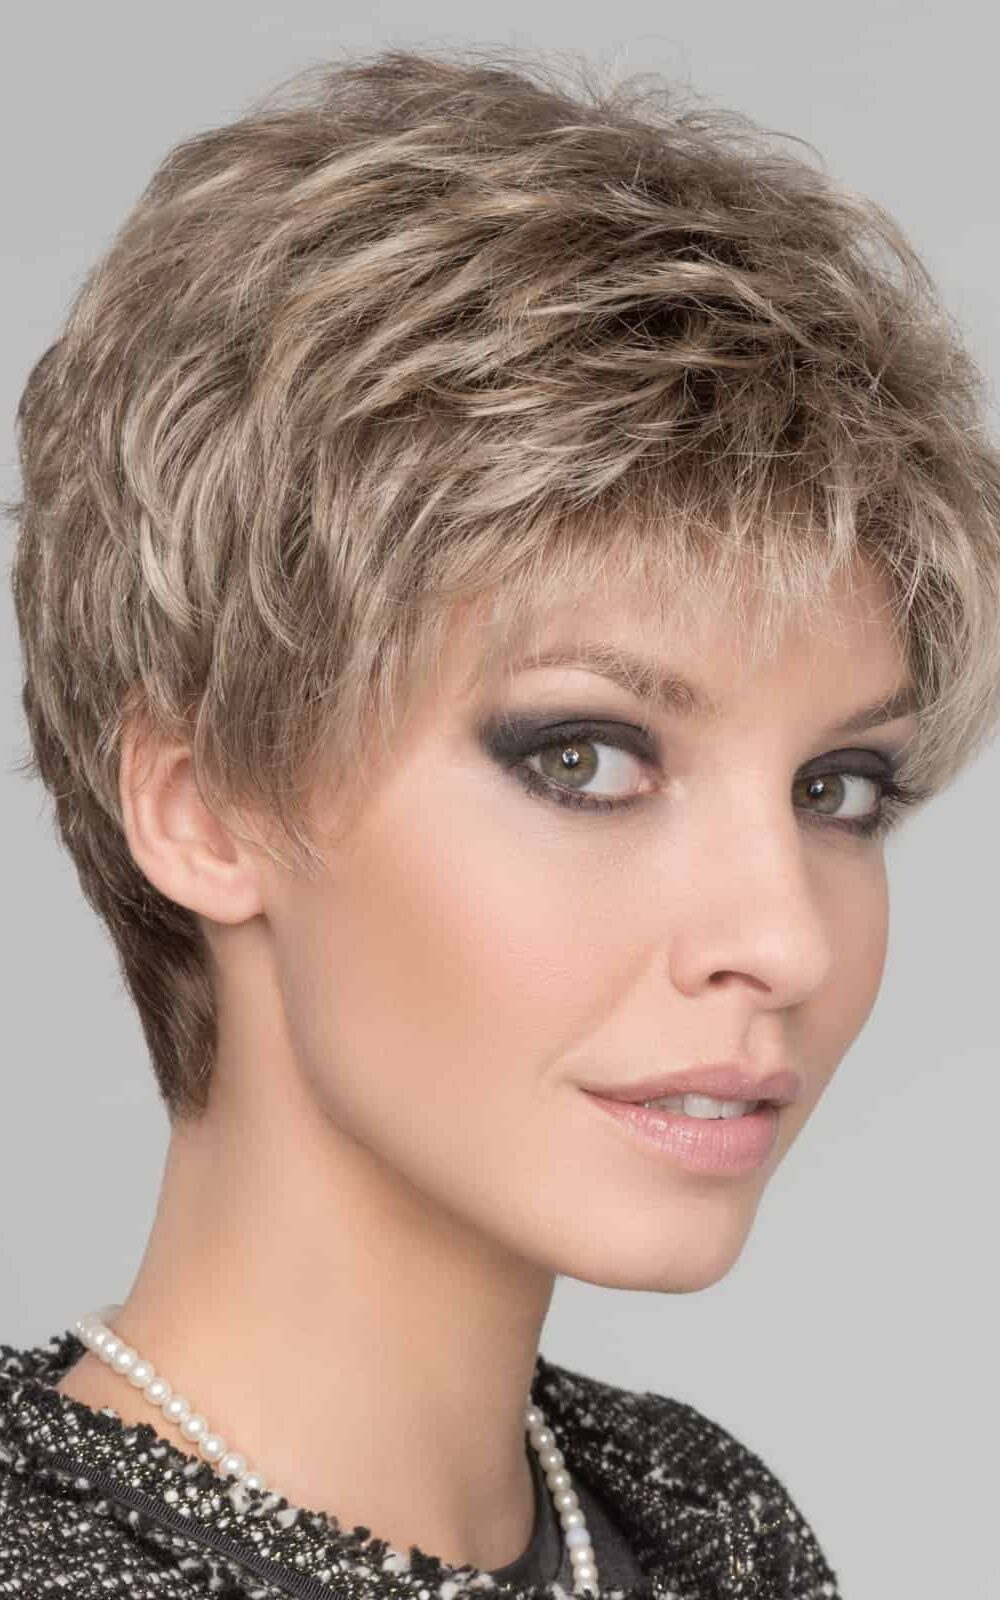 Foxy by Ellen Wille   SAND MULTI ROOTED   Lightest Brown and Medium Ash Blonde Blend with Light Brown Roots